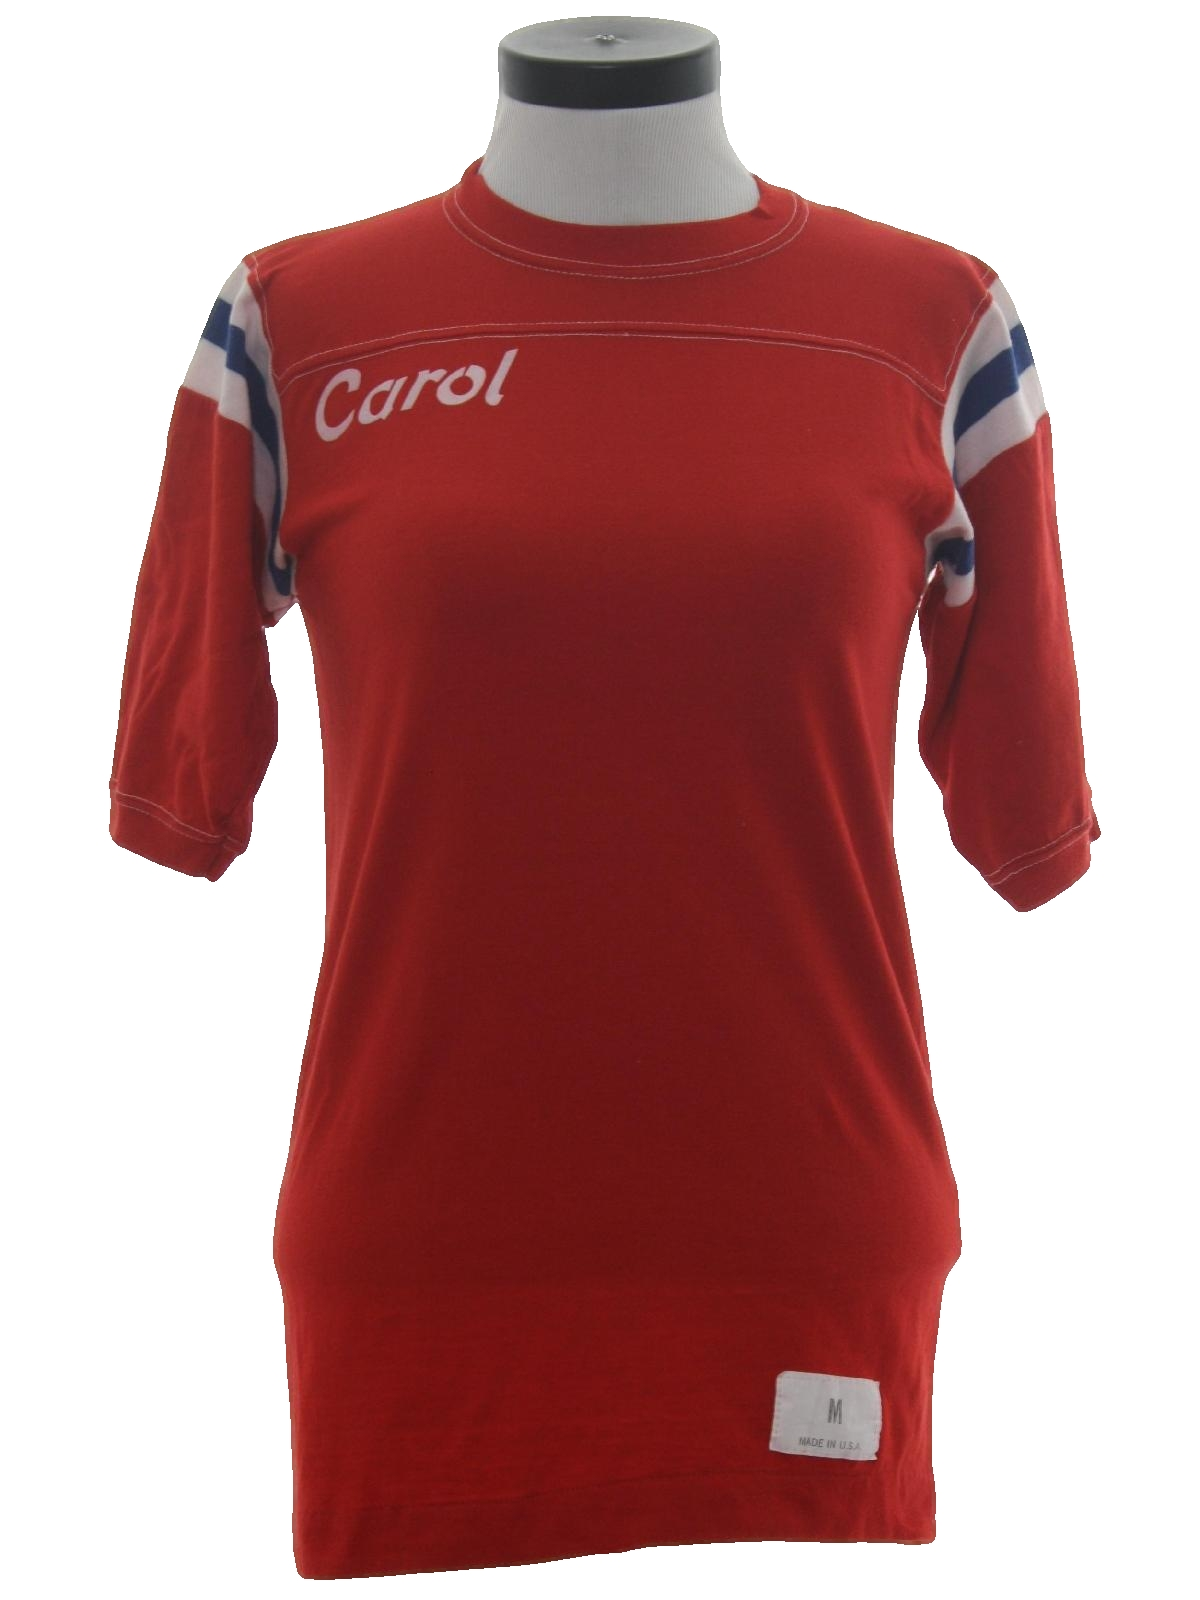 1970 39 s retro t shirt 70s sportswear womens red for Poly blend t shirts wholesale